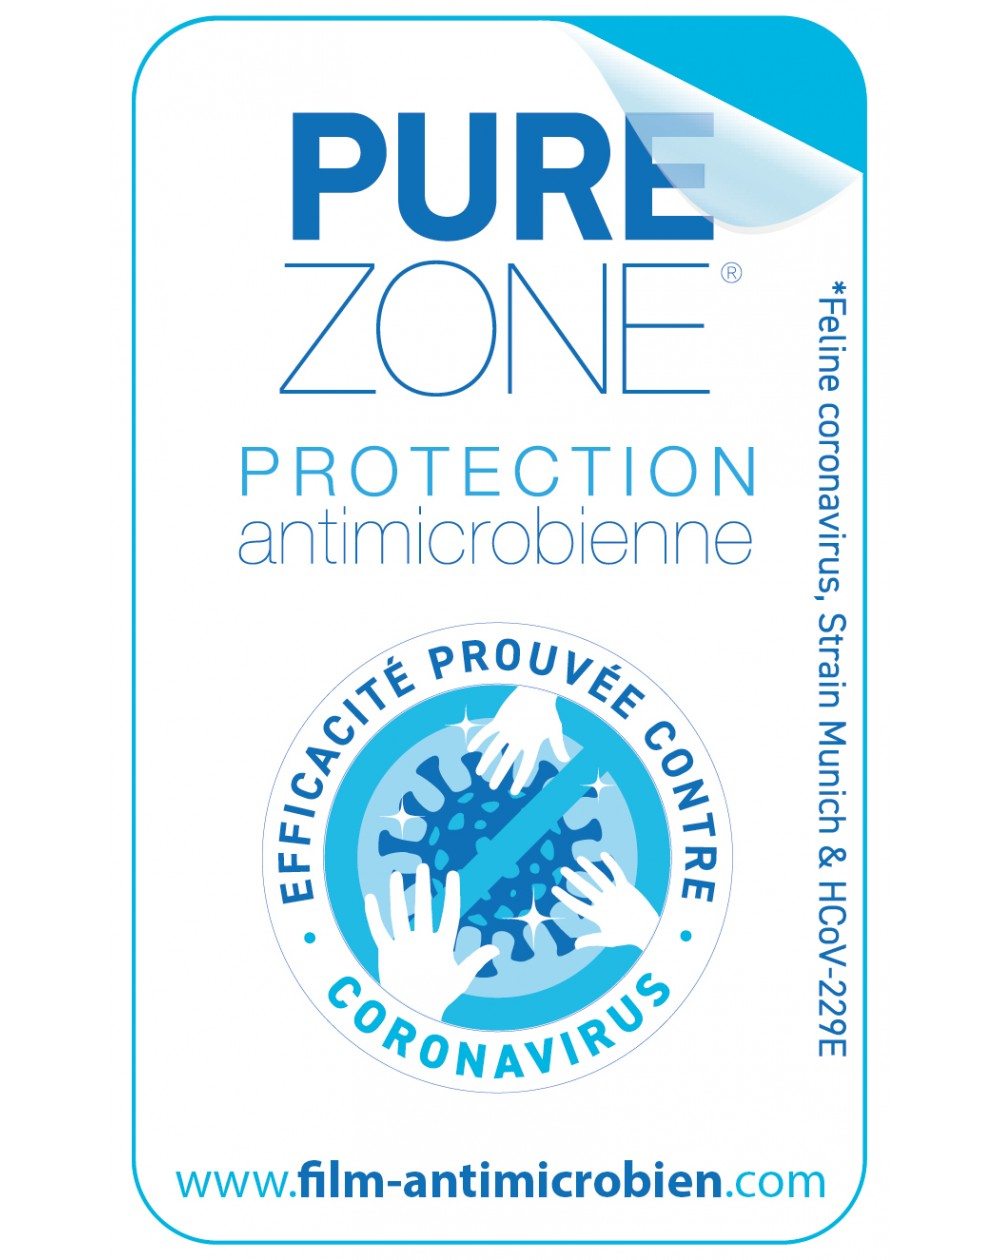 PURE ZONE VIRUS COMMUNICATION